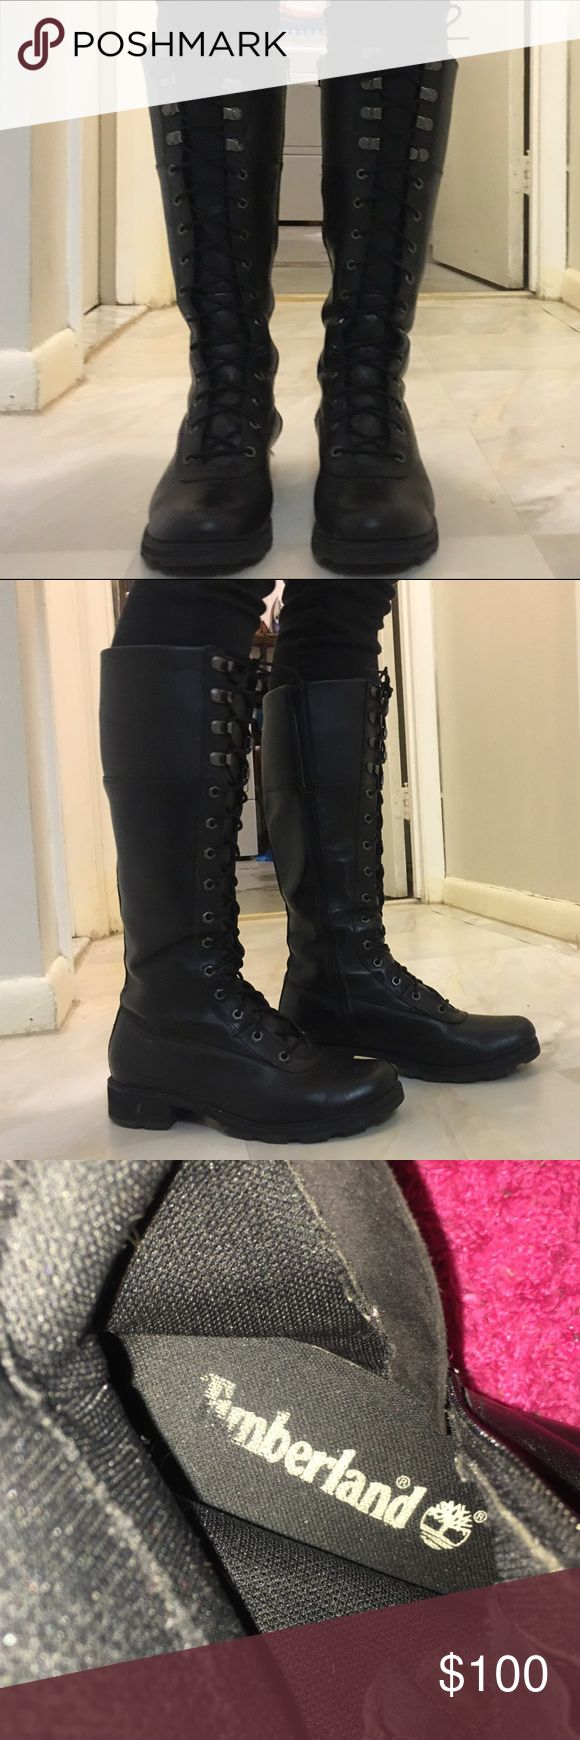 Timberland Boots Knee high boots, In great condition, Waterproof, Combat boot style                                                                                                  💰Will consider official offers  📬 Fast shipping  🏡 Smoke & pet free home  📦 Bundle to save 20%.                                       💕 Share for share  🙋🏻 Questions welcomed! Timberland Shoes Lace Up Boots